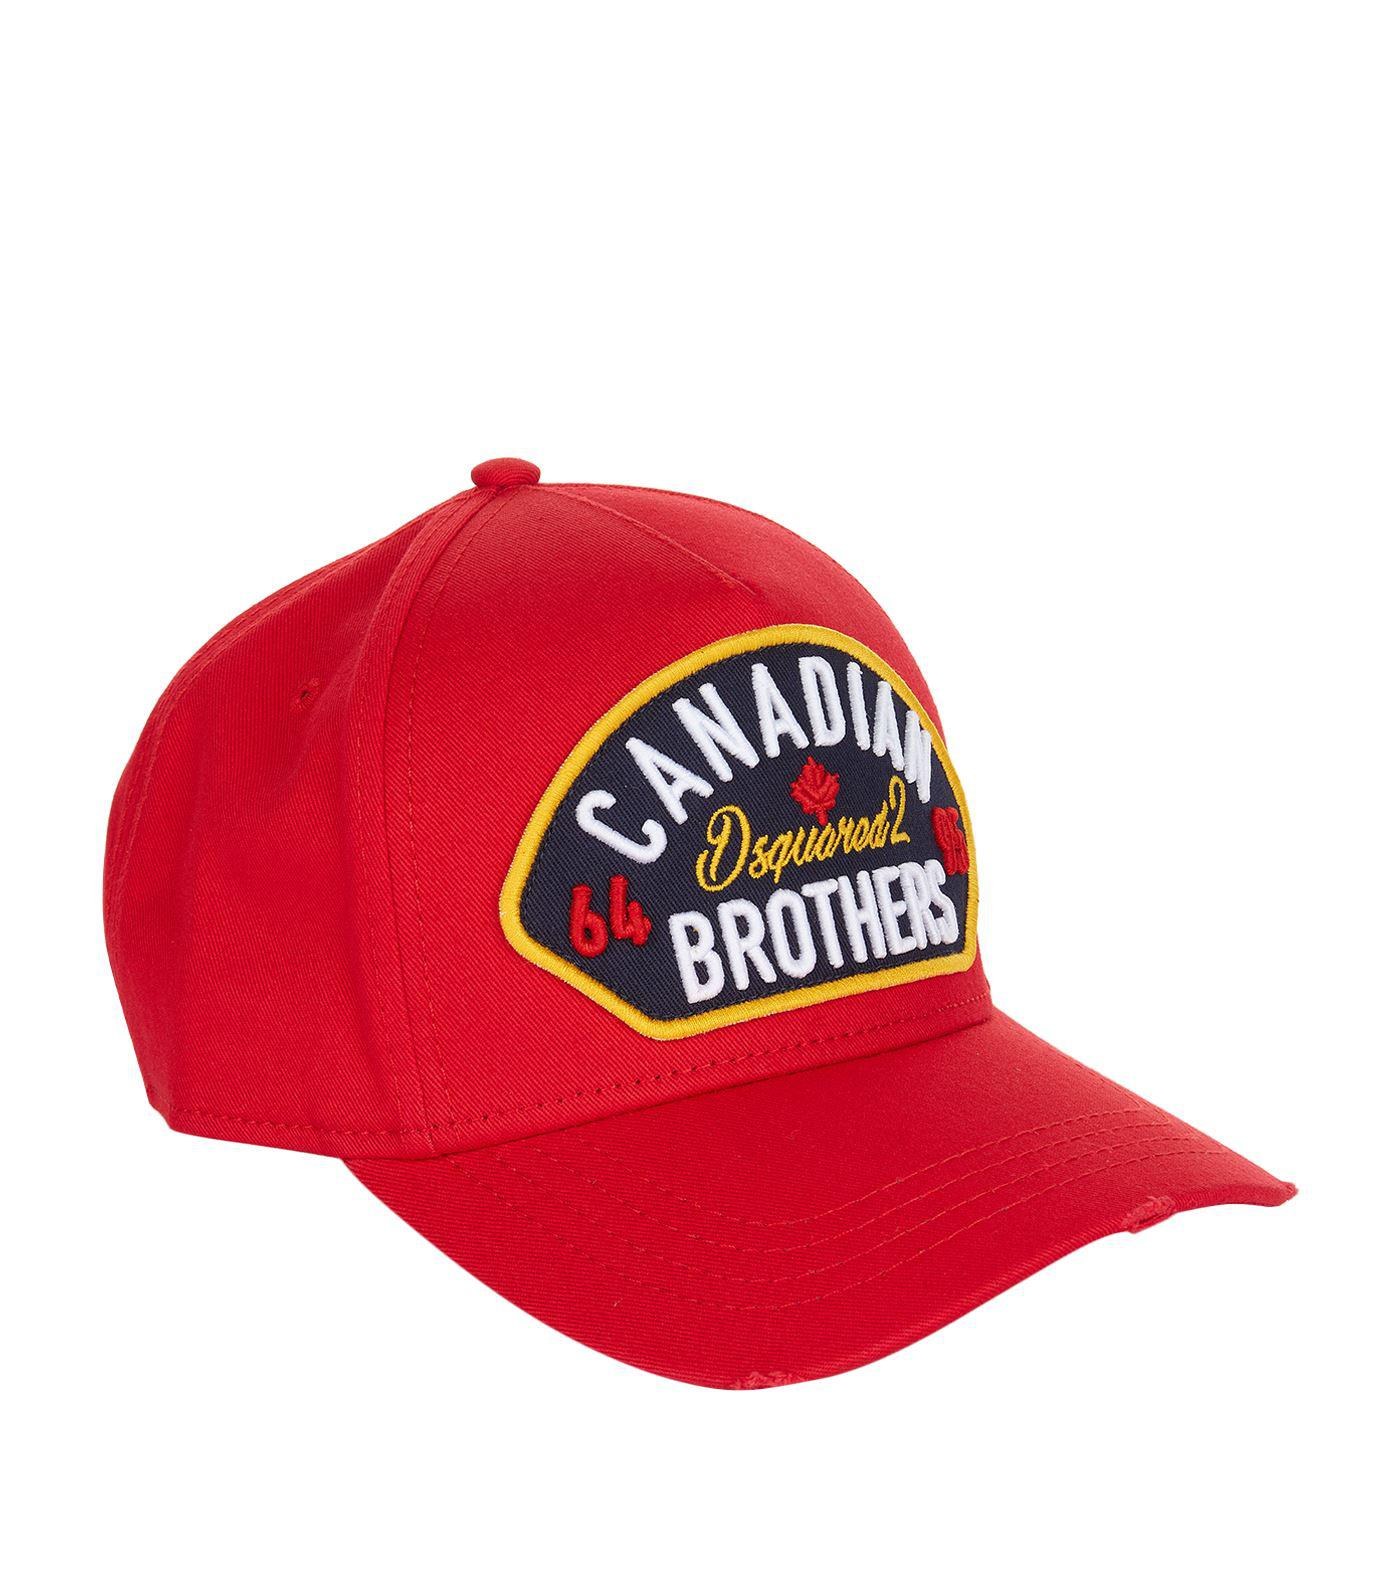 DSquared² Canadian Brothers Cap in Red for Men - Lyst 28aa9199812